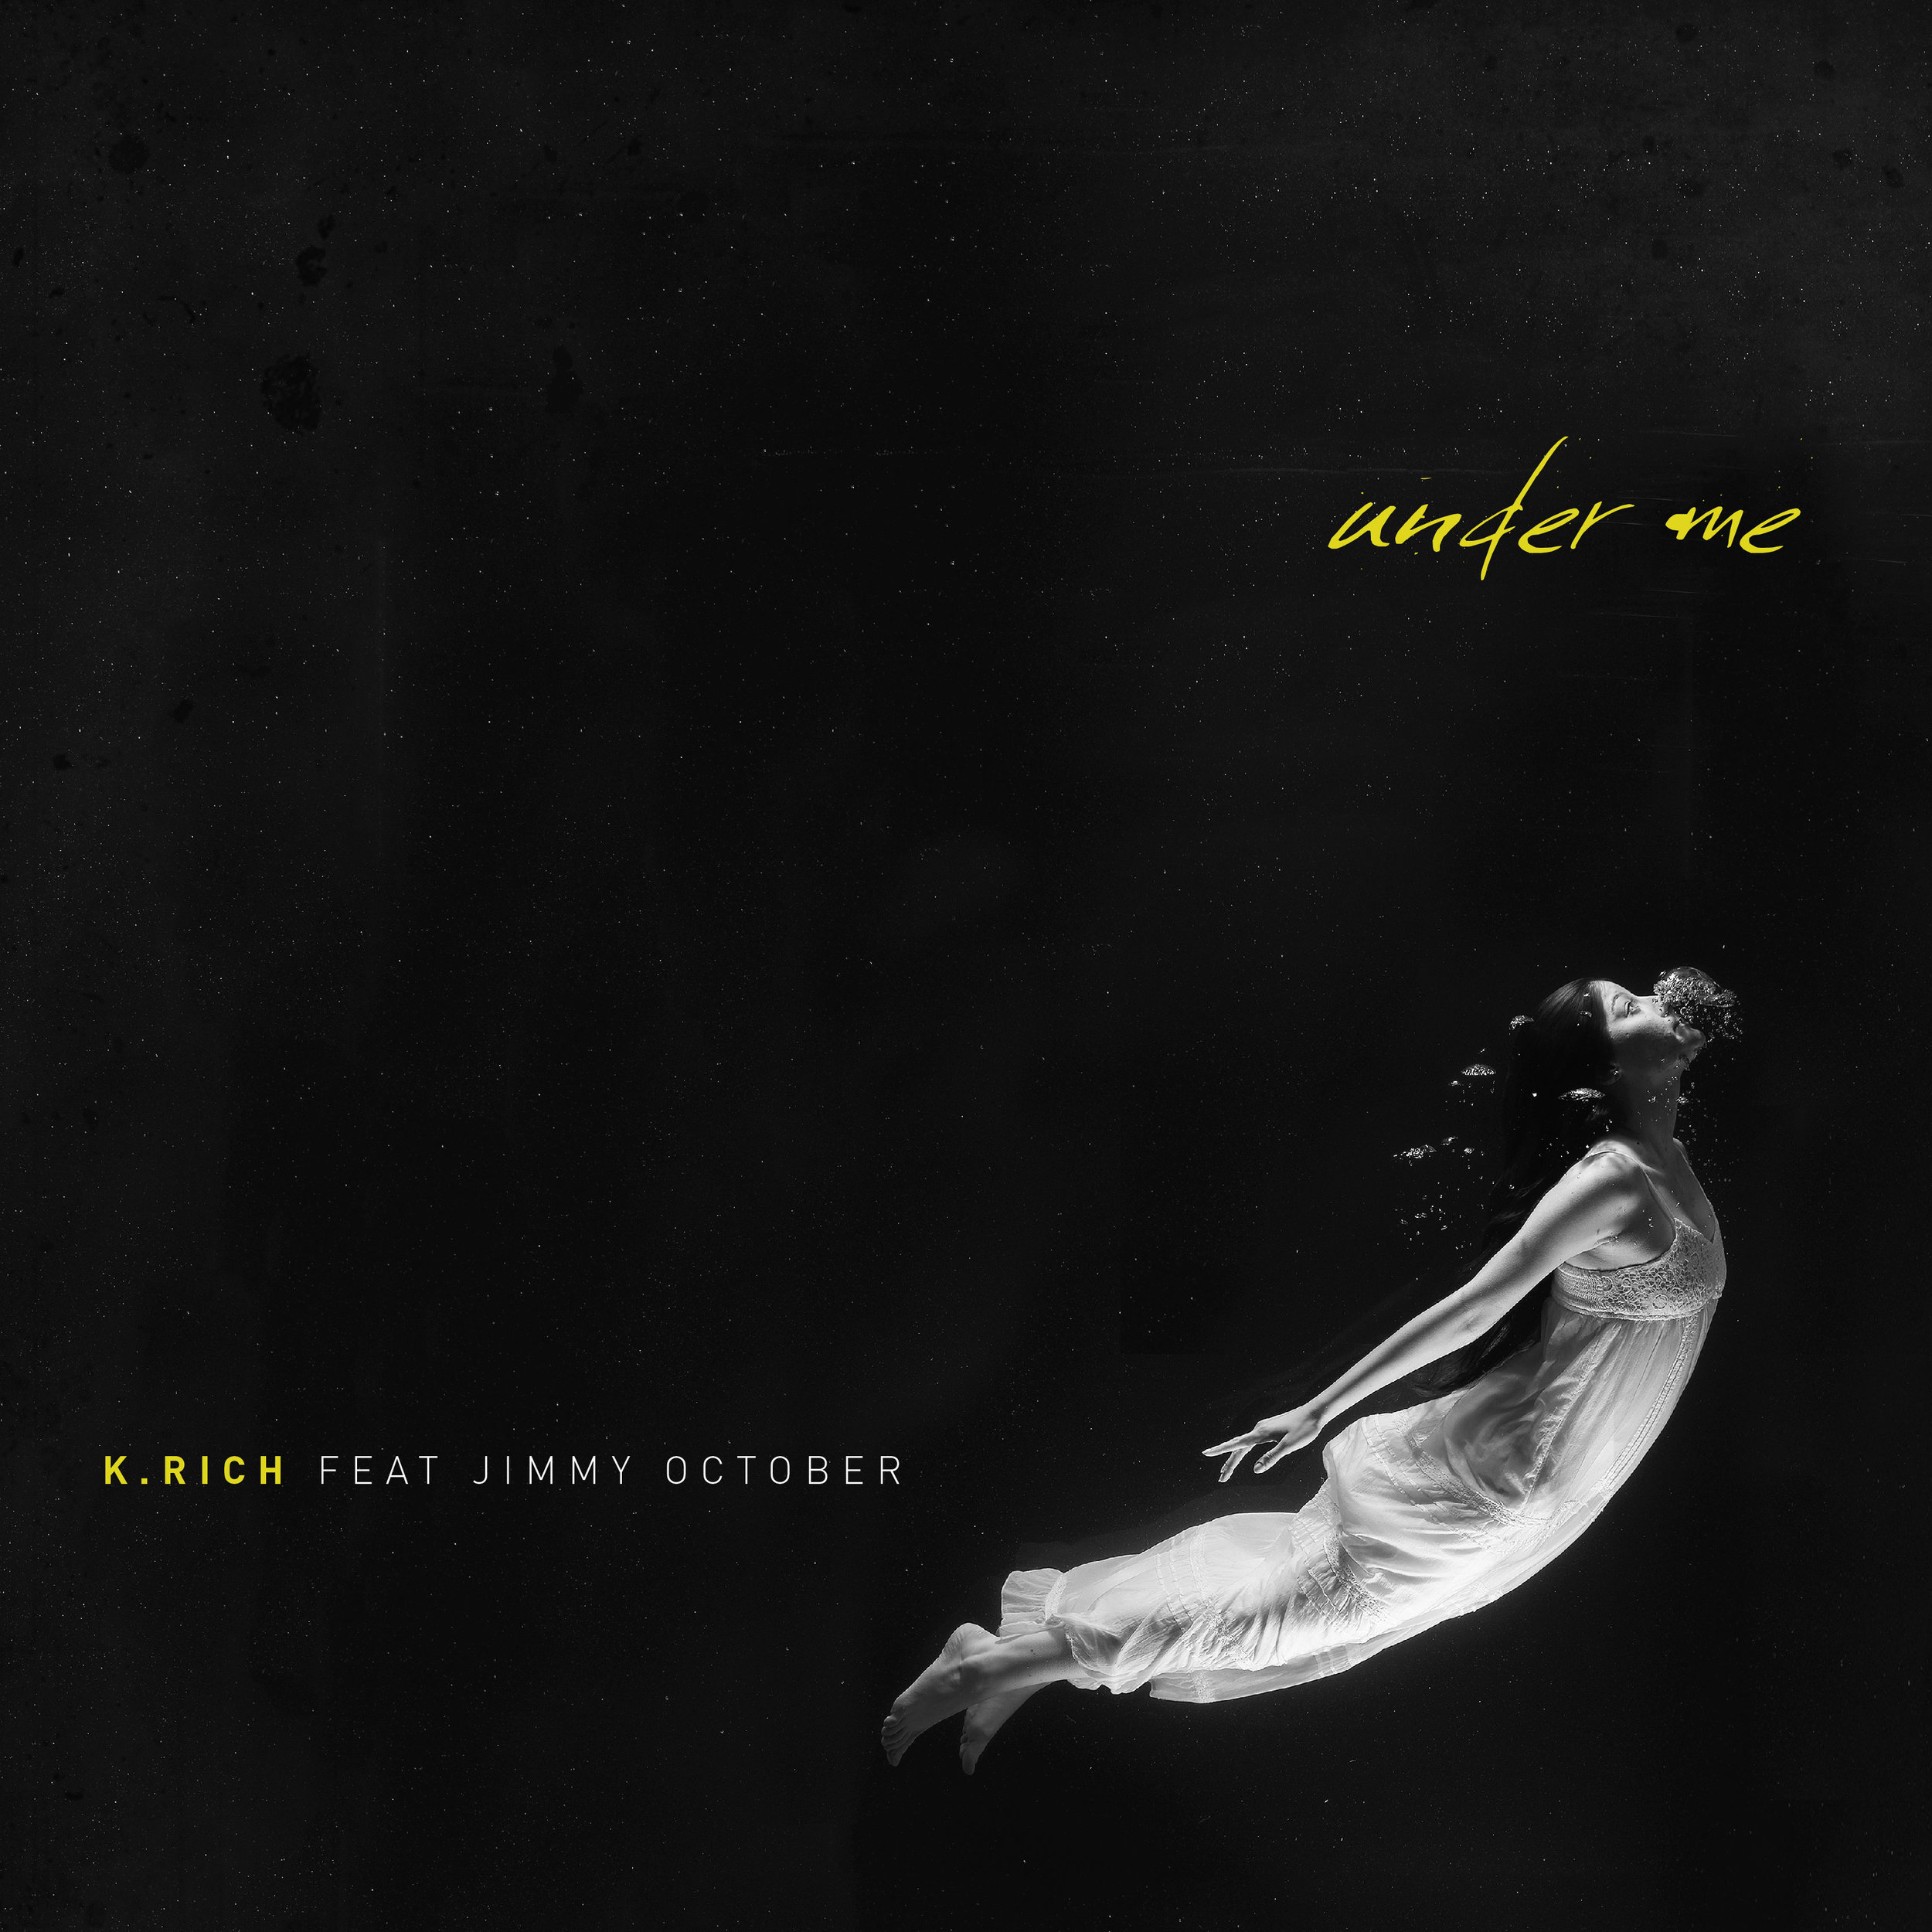 Under Me (feat. Jimmy October)